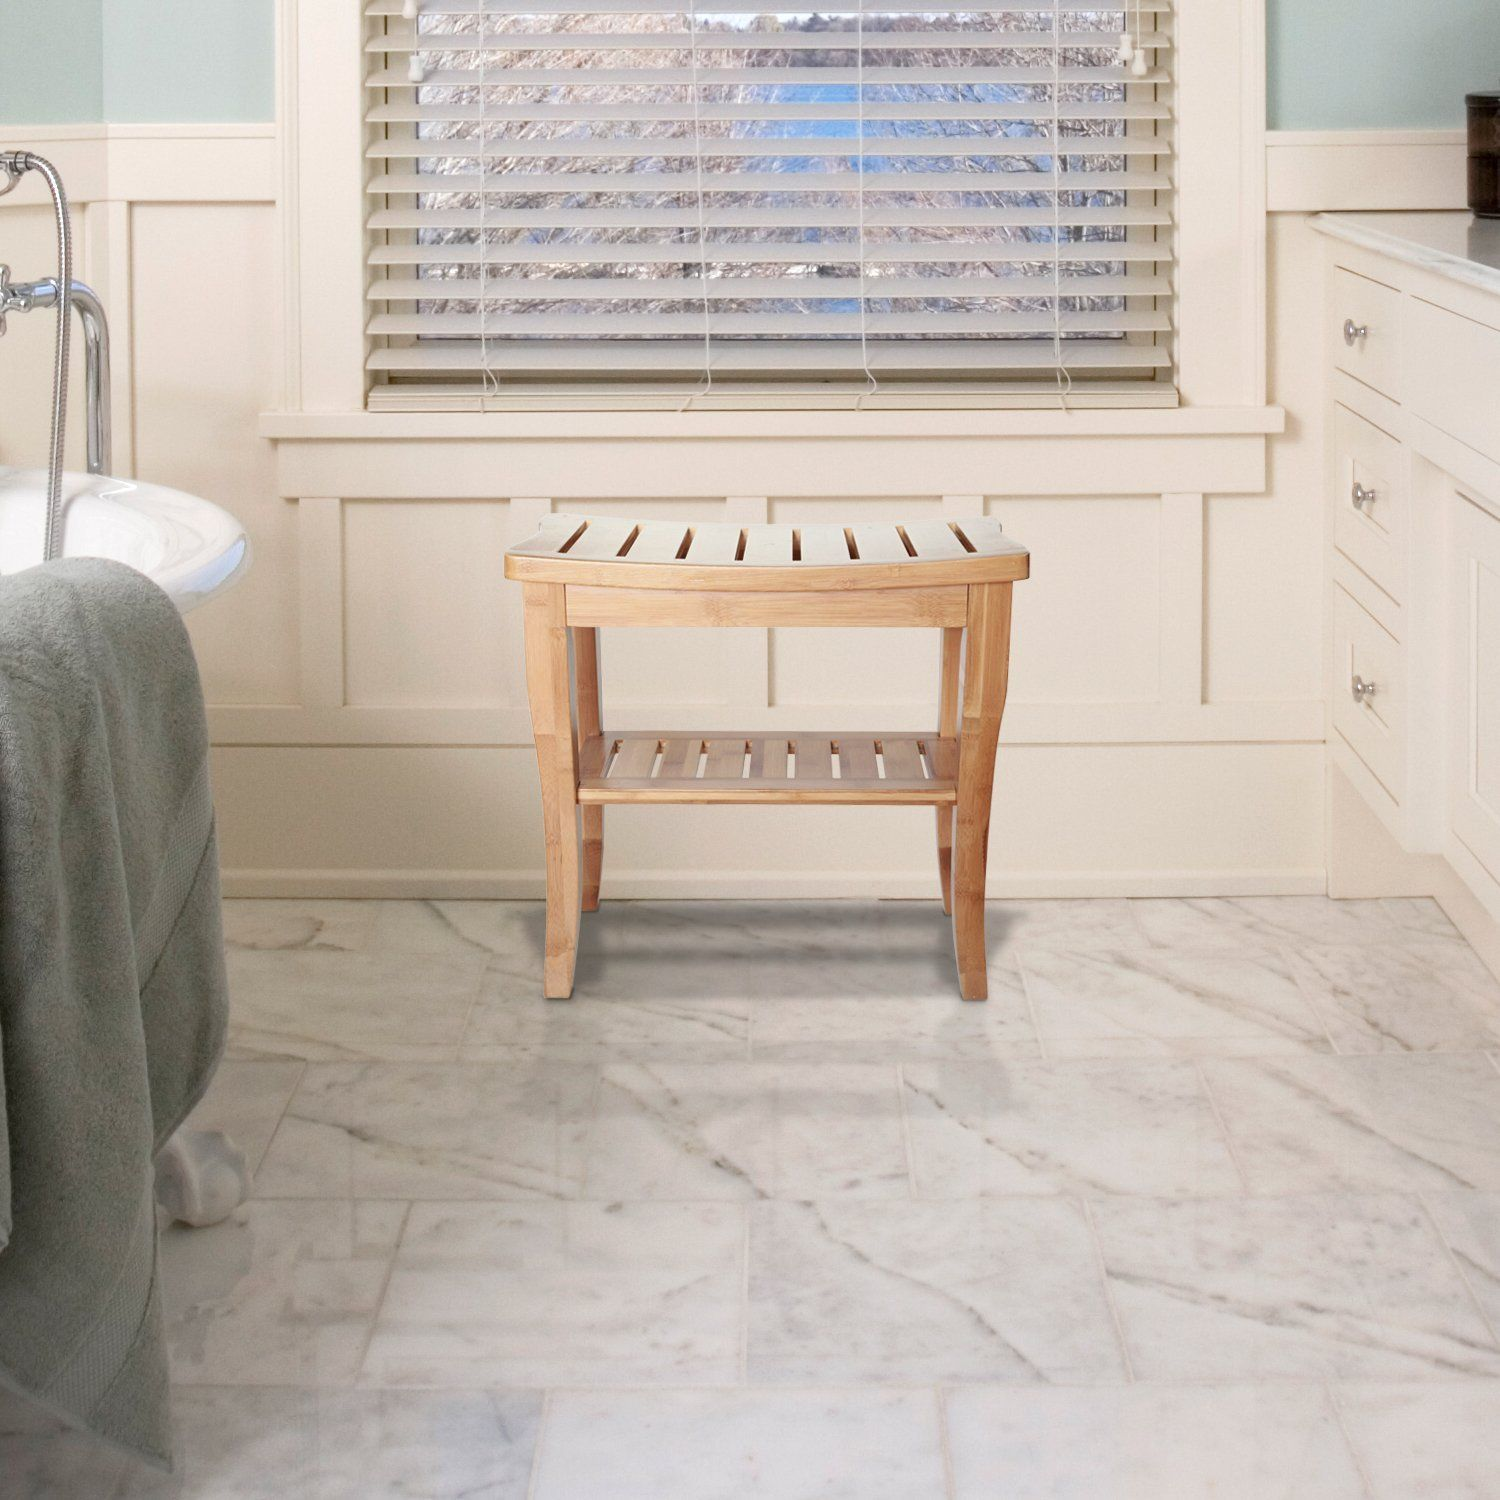 ToiletTree Products Deluxe Bamboo Shower Seat Bench with Storage ...